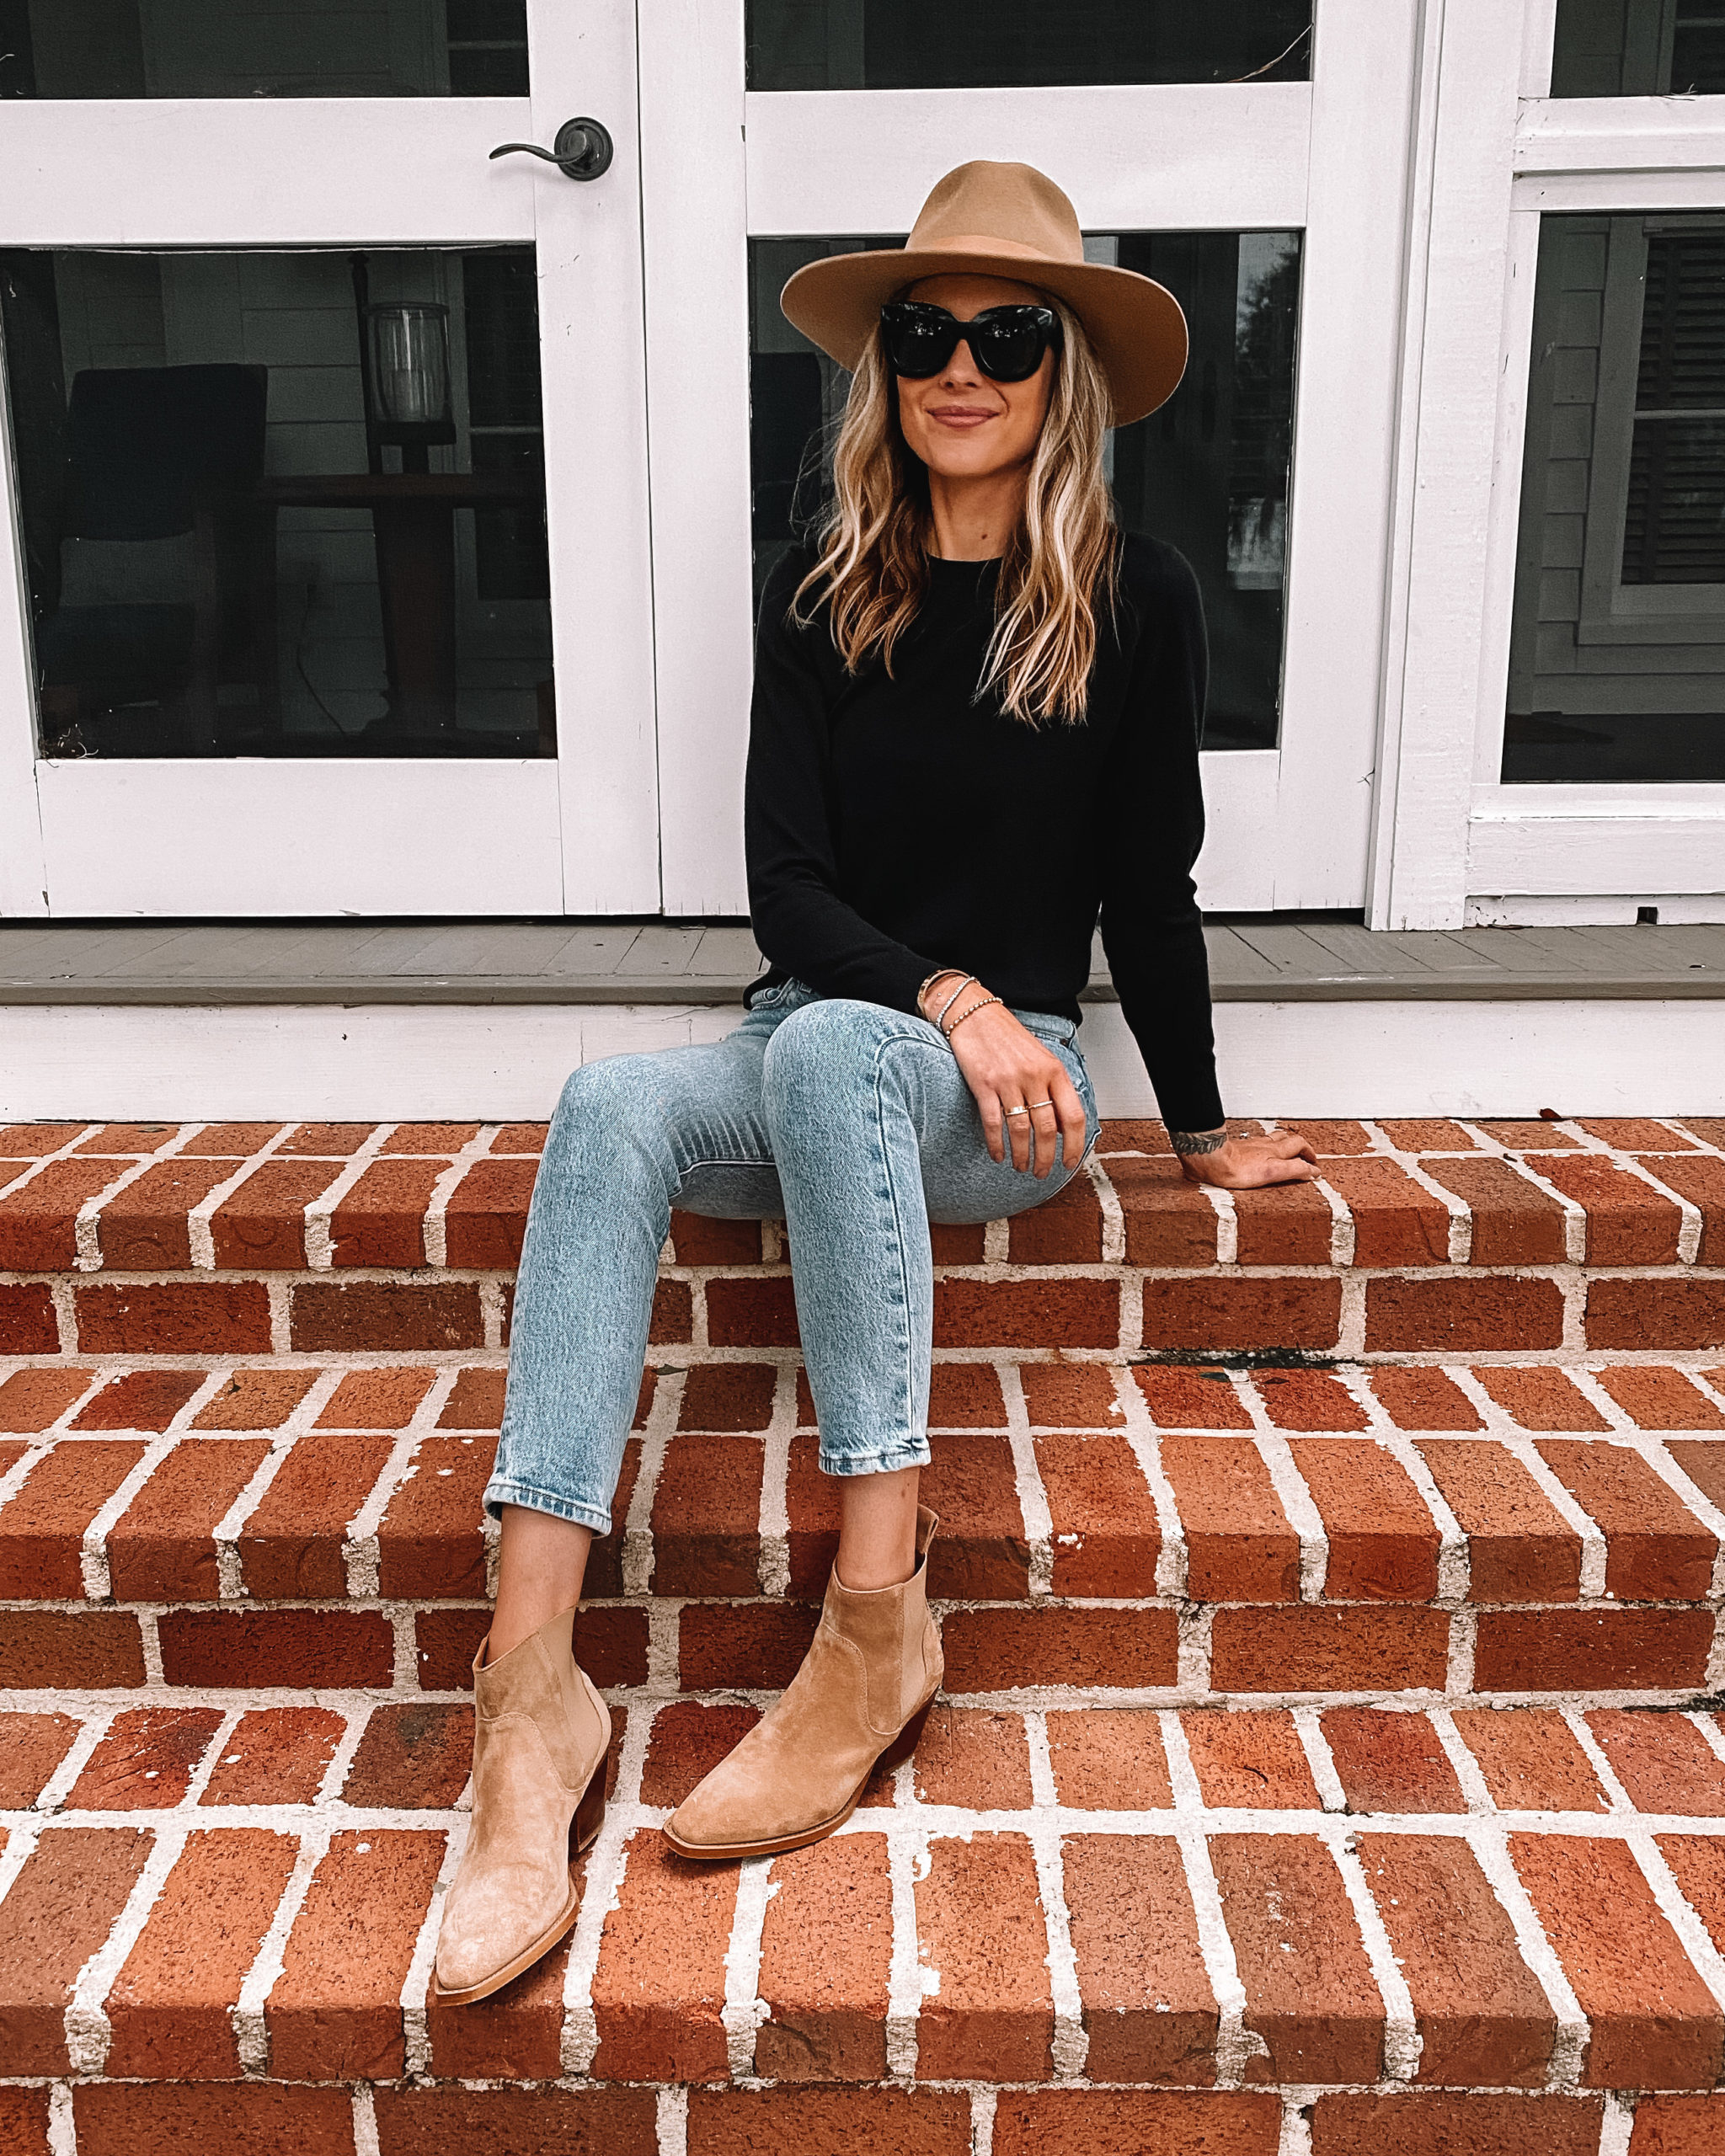 Fashion Jackson Wearing Rag and Bone Tan Hat Black Sweater Levis Jeans Tan Suede Booties